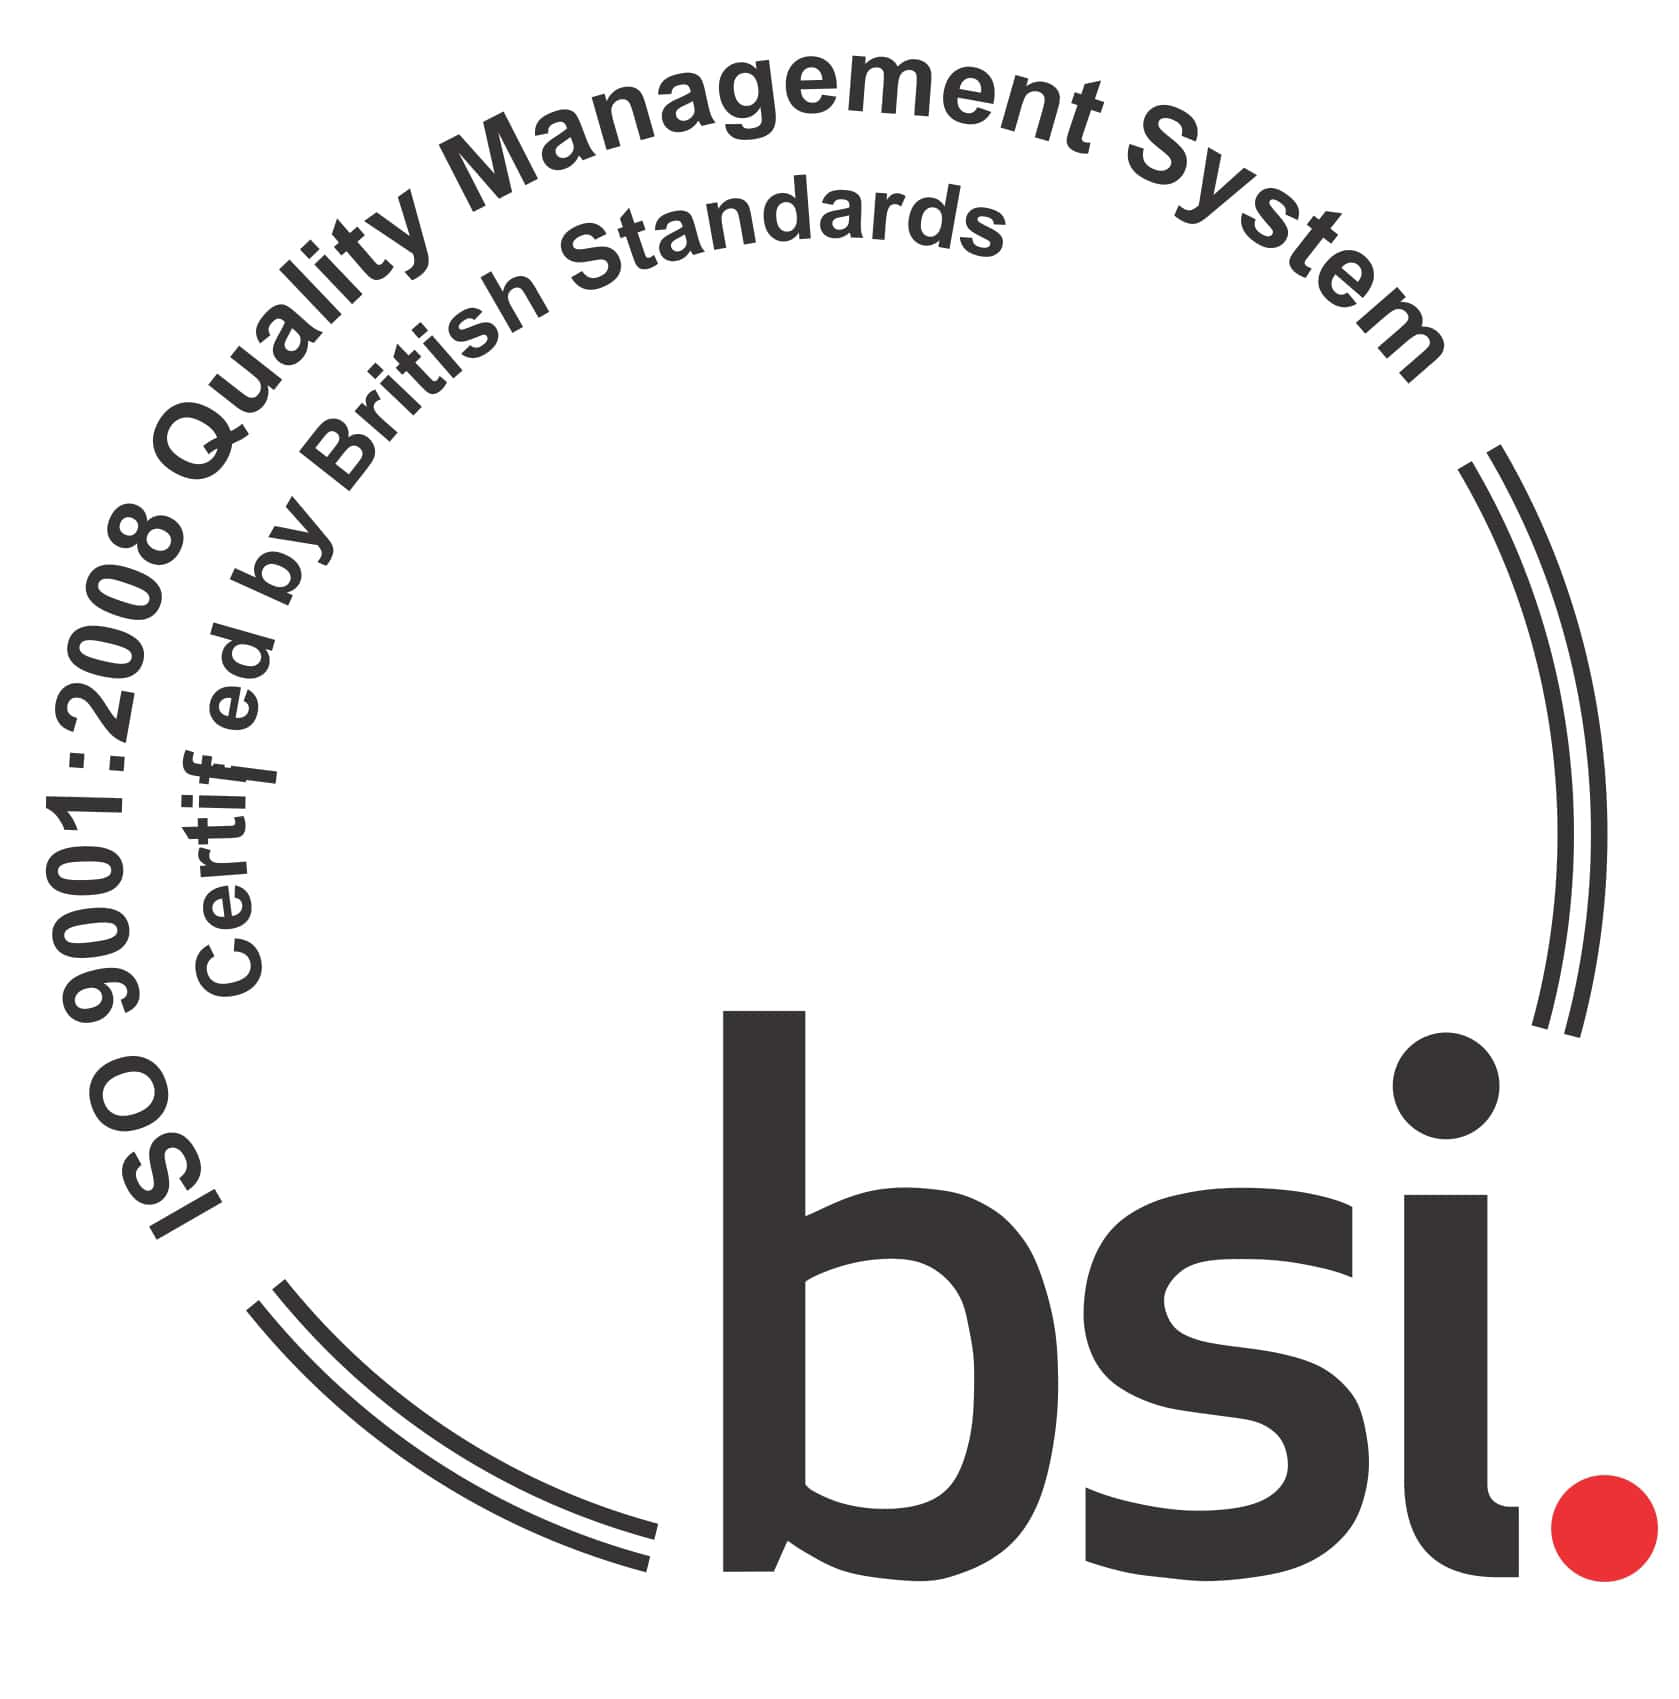 Accreditation Quality Management ISO - British Standard Institute